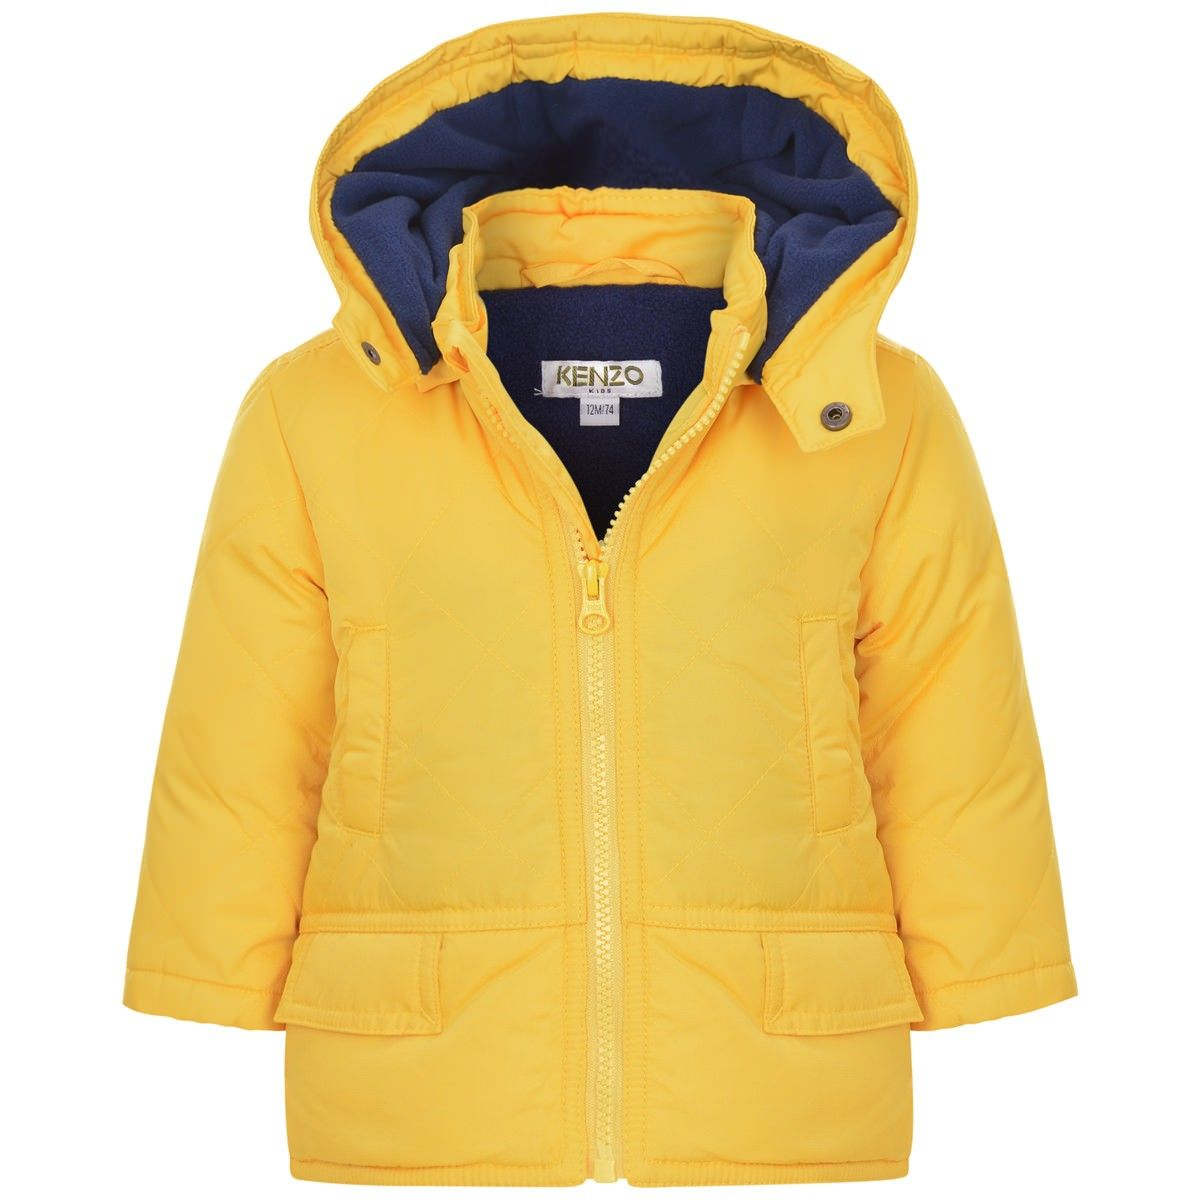 Kenzo Baby Boys Yellow Down Padded Quilted Coat | ++baby+boy ... : quilted baby coat - Adamdwight.com